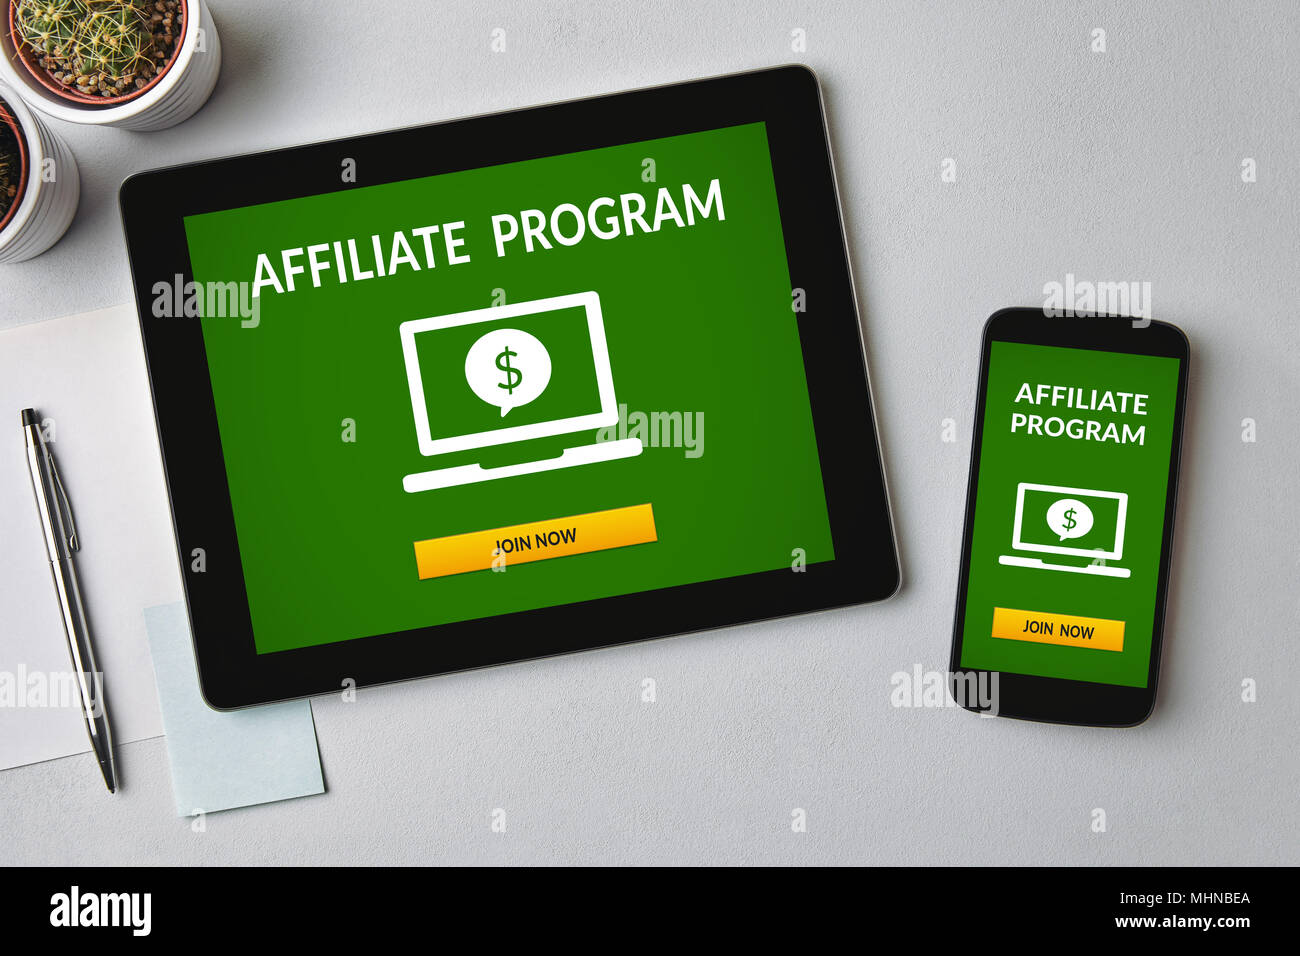 Affiliate program concept on tablet and smartphone screen over gray table. All screen content is designed by me. Flat lay - Stock Image